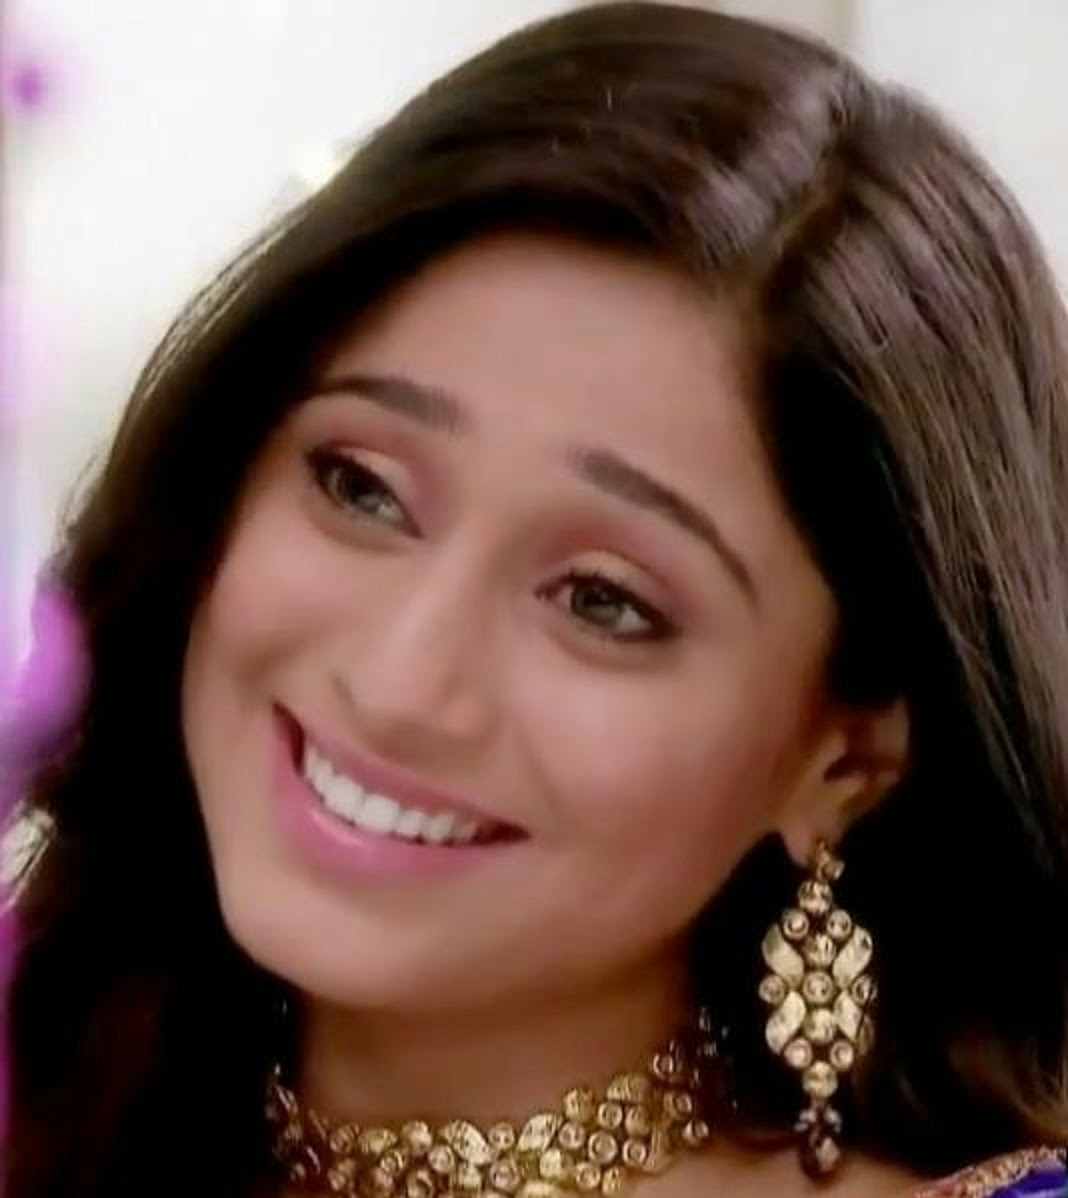 soumya seth hd wallpapers free download -i- | wallpaper picture photo